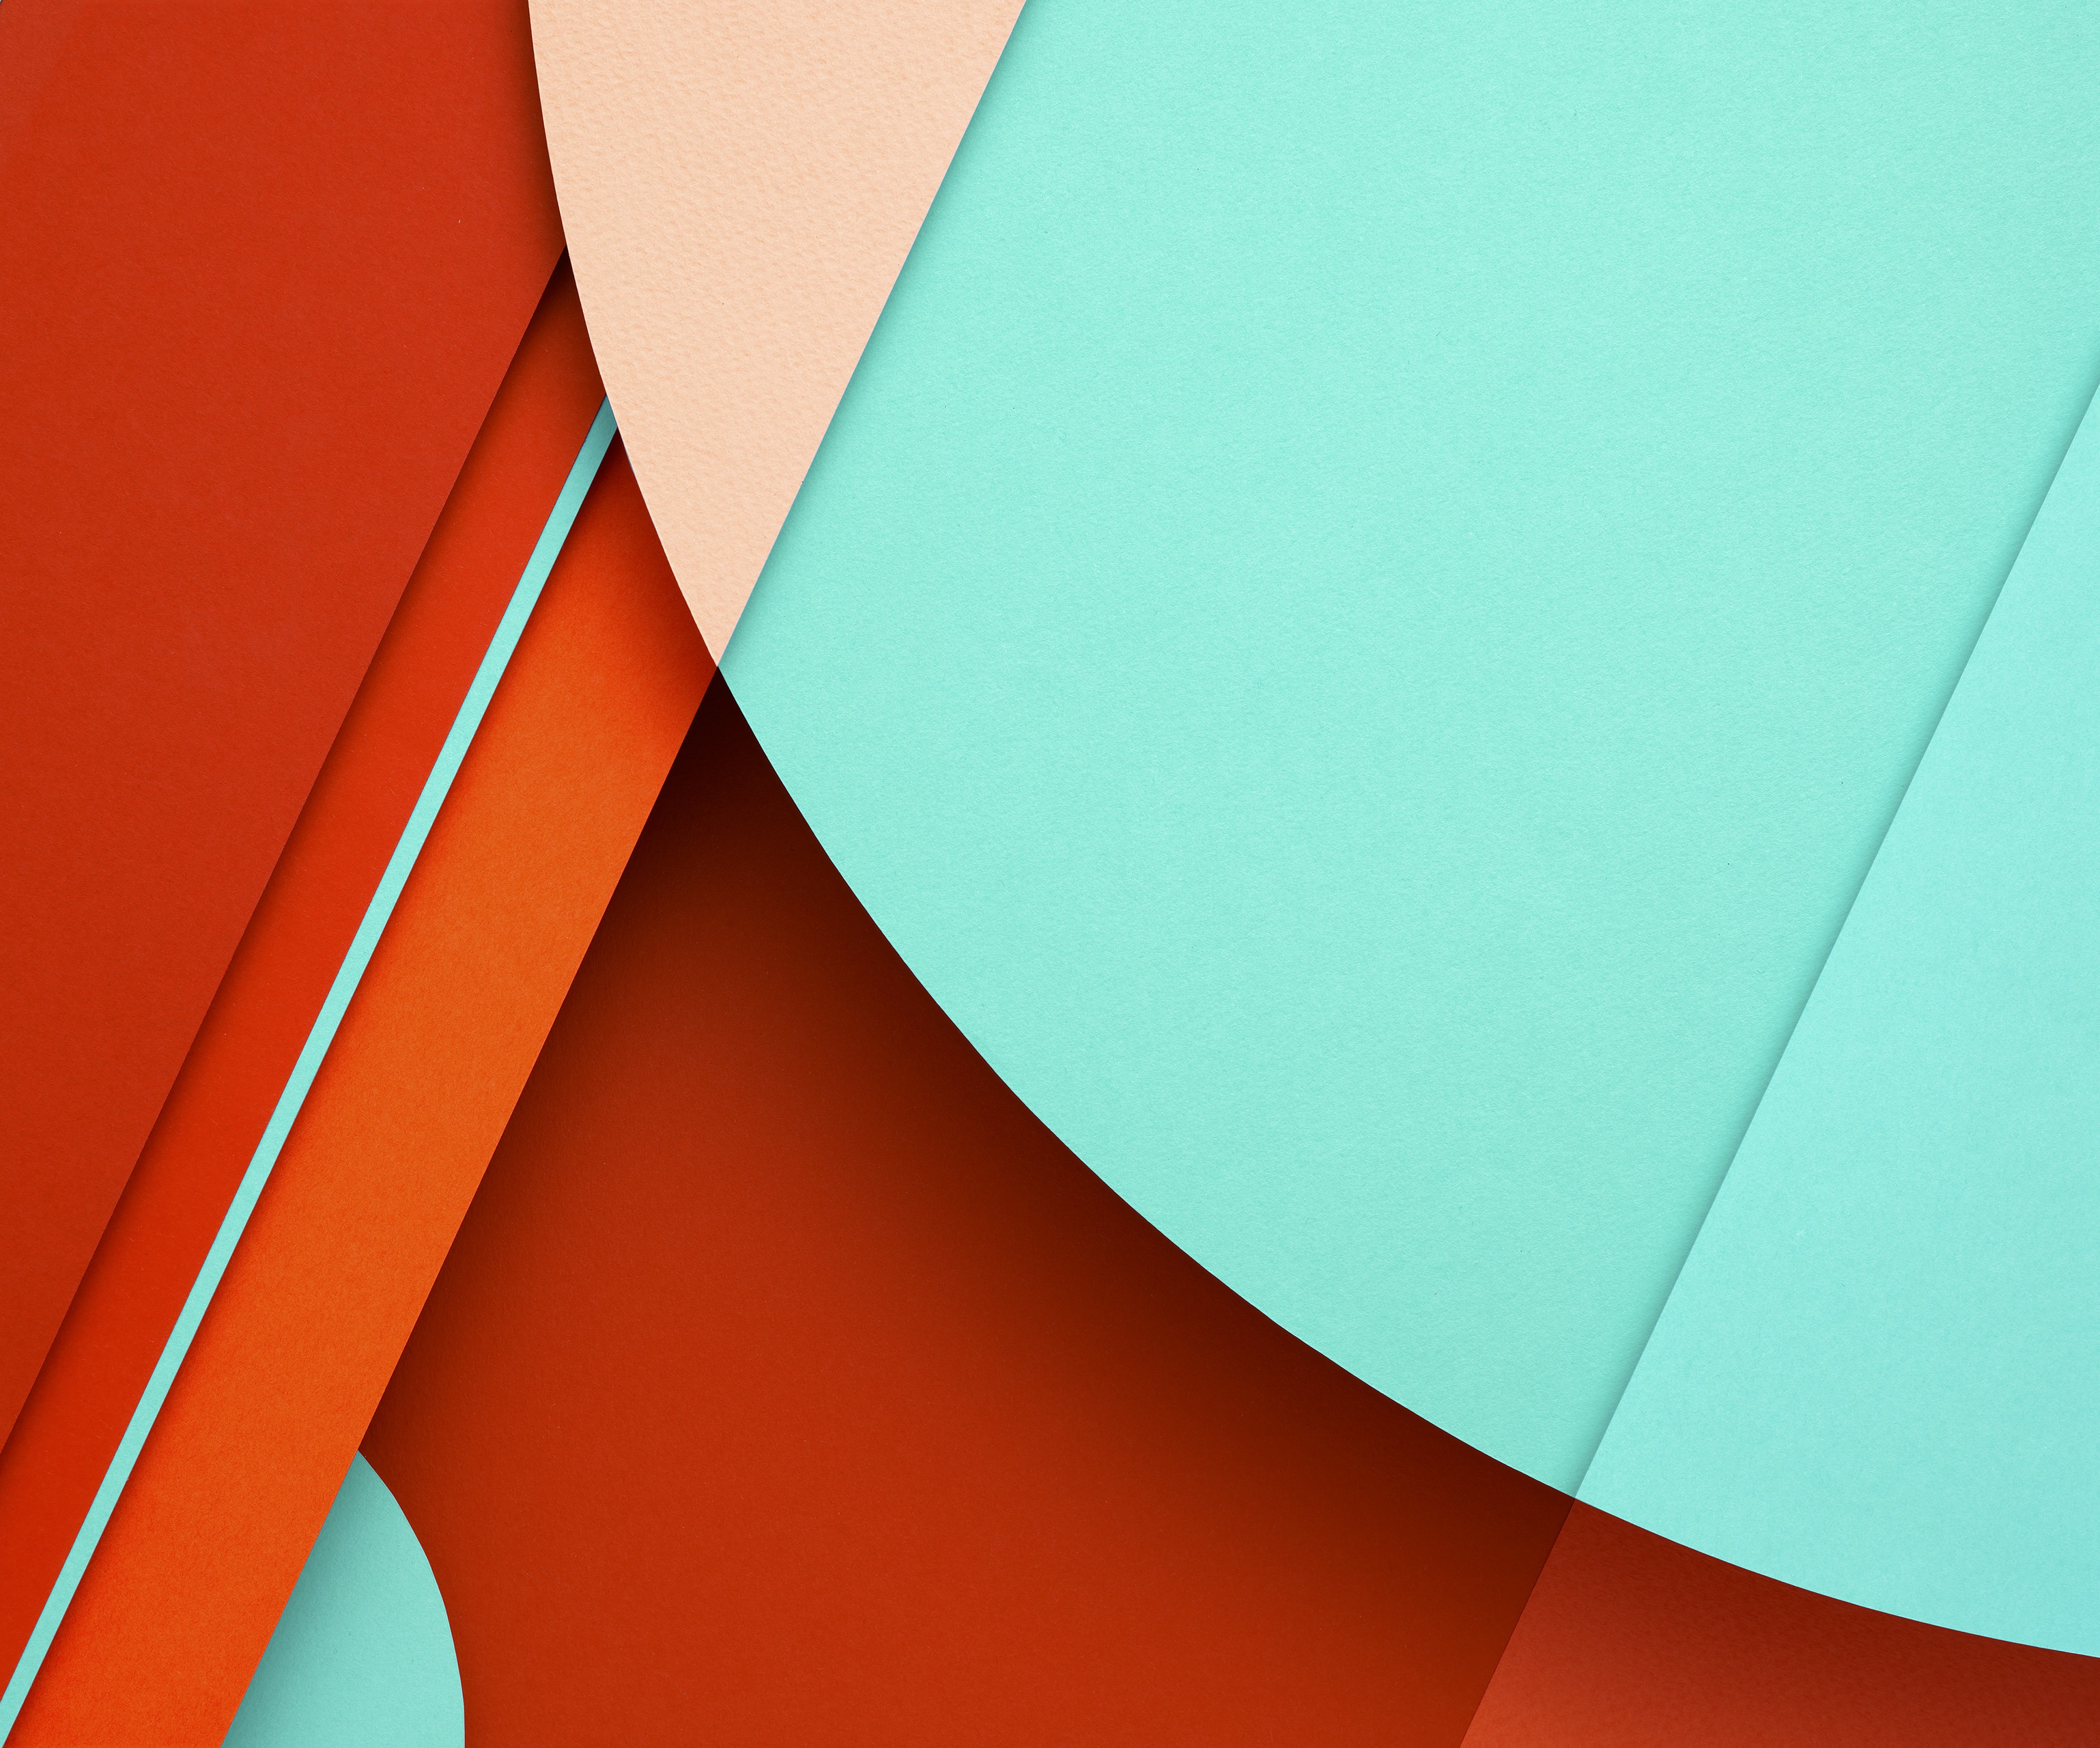 Download: 11 Wallpapers From Android 5 0 Lollipop